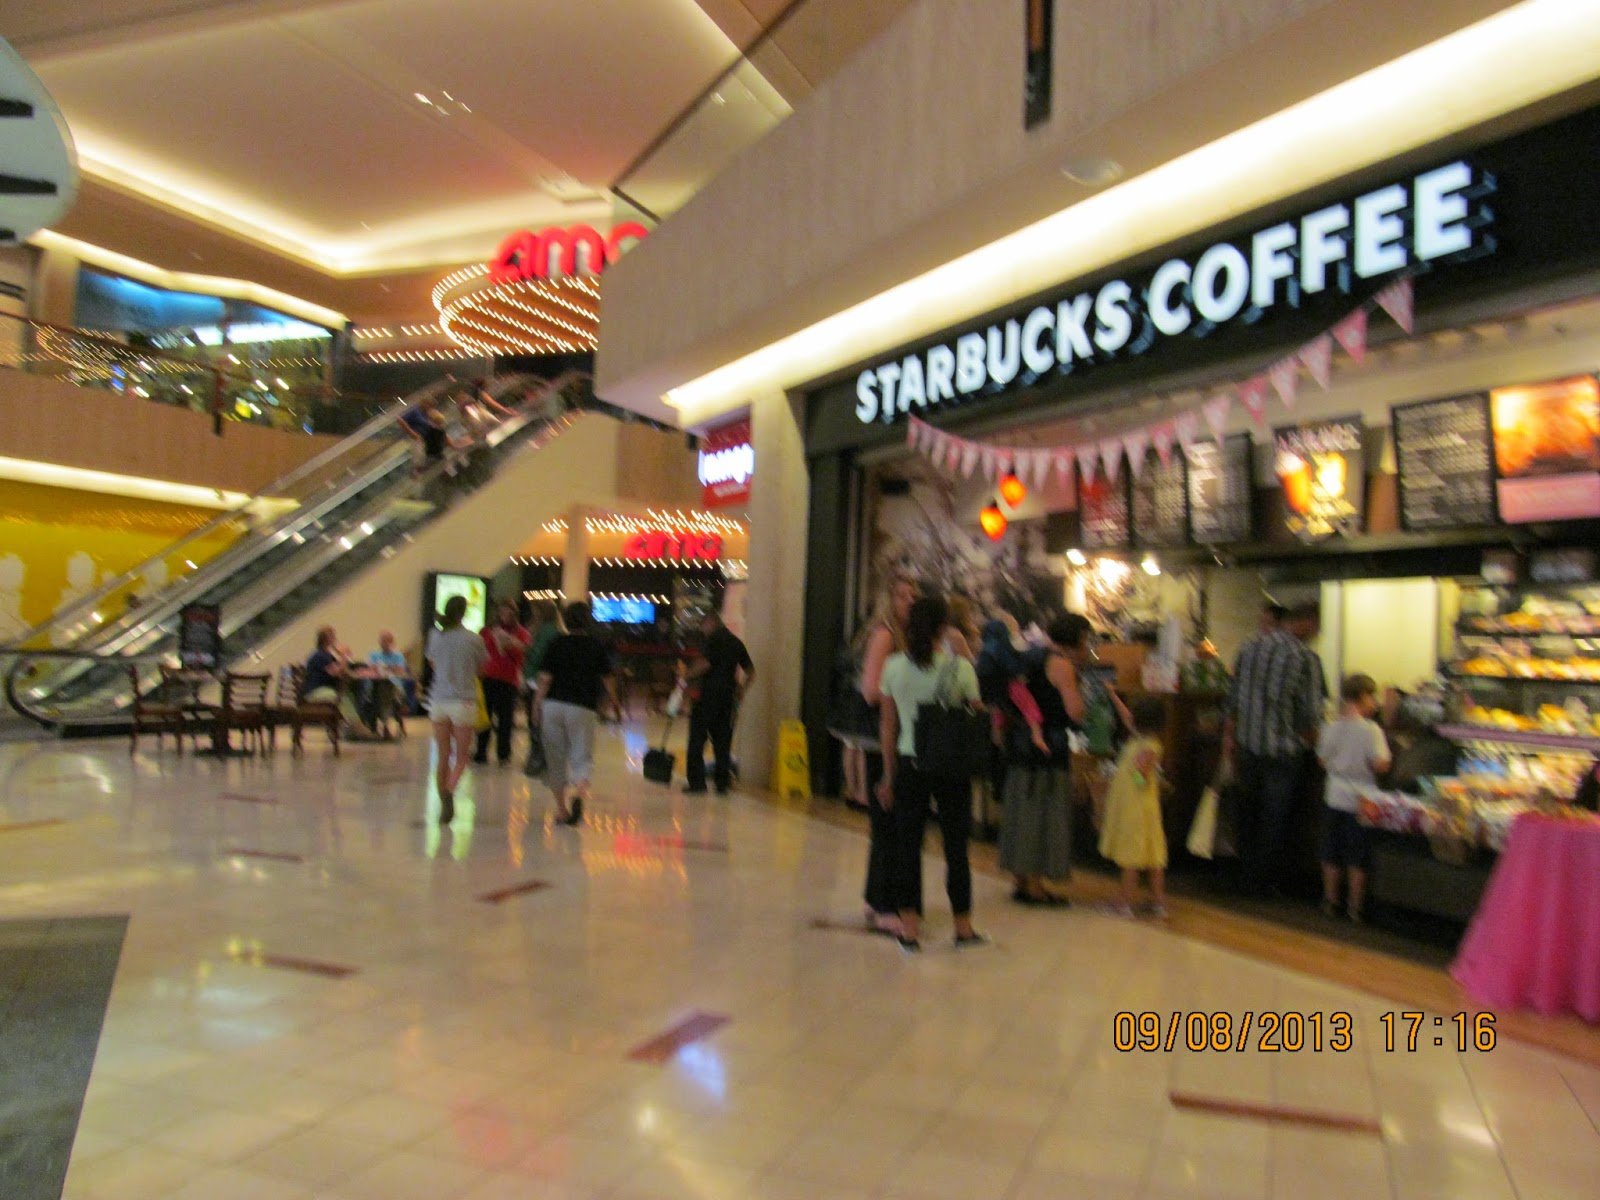 Northbrook Court is a shopping mall in Northbrook, Illinois. The mall has a collection of stores serving the North Shore suburbs of Chicago. Located on acres ( km 2) its anchor stores are Lord & Taylor, Macy's, Neiman Marcus, and a screen AMC Theatres on the south side of the mall.